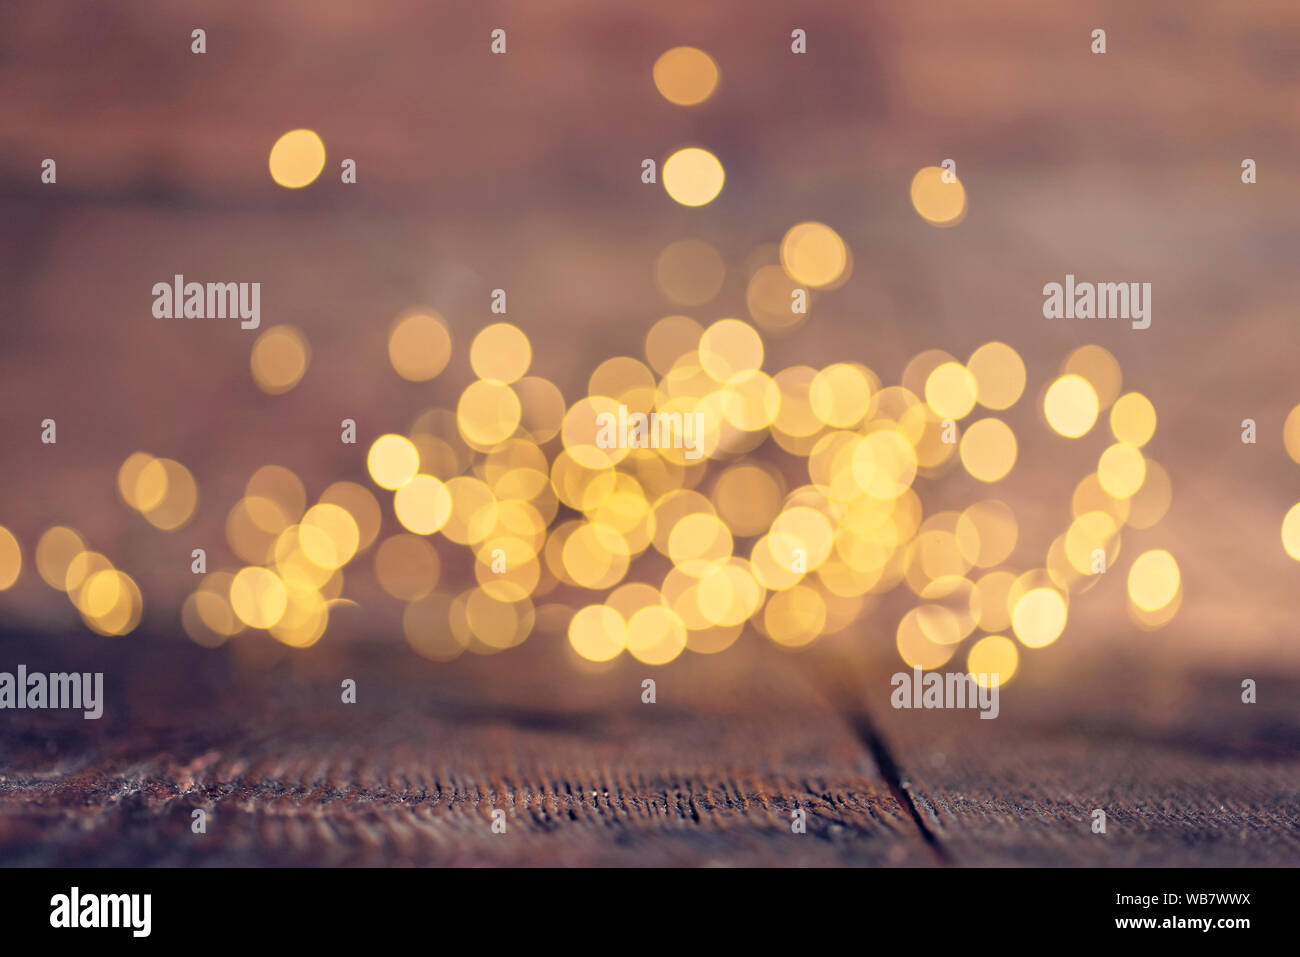 Gold rays of light with bubbles and glitters on wooden background Stock Photo